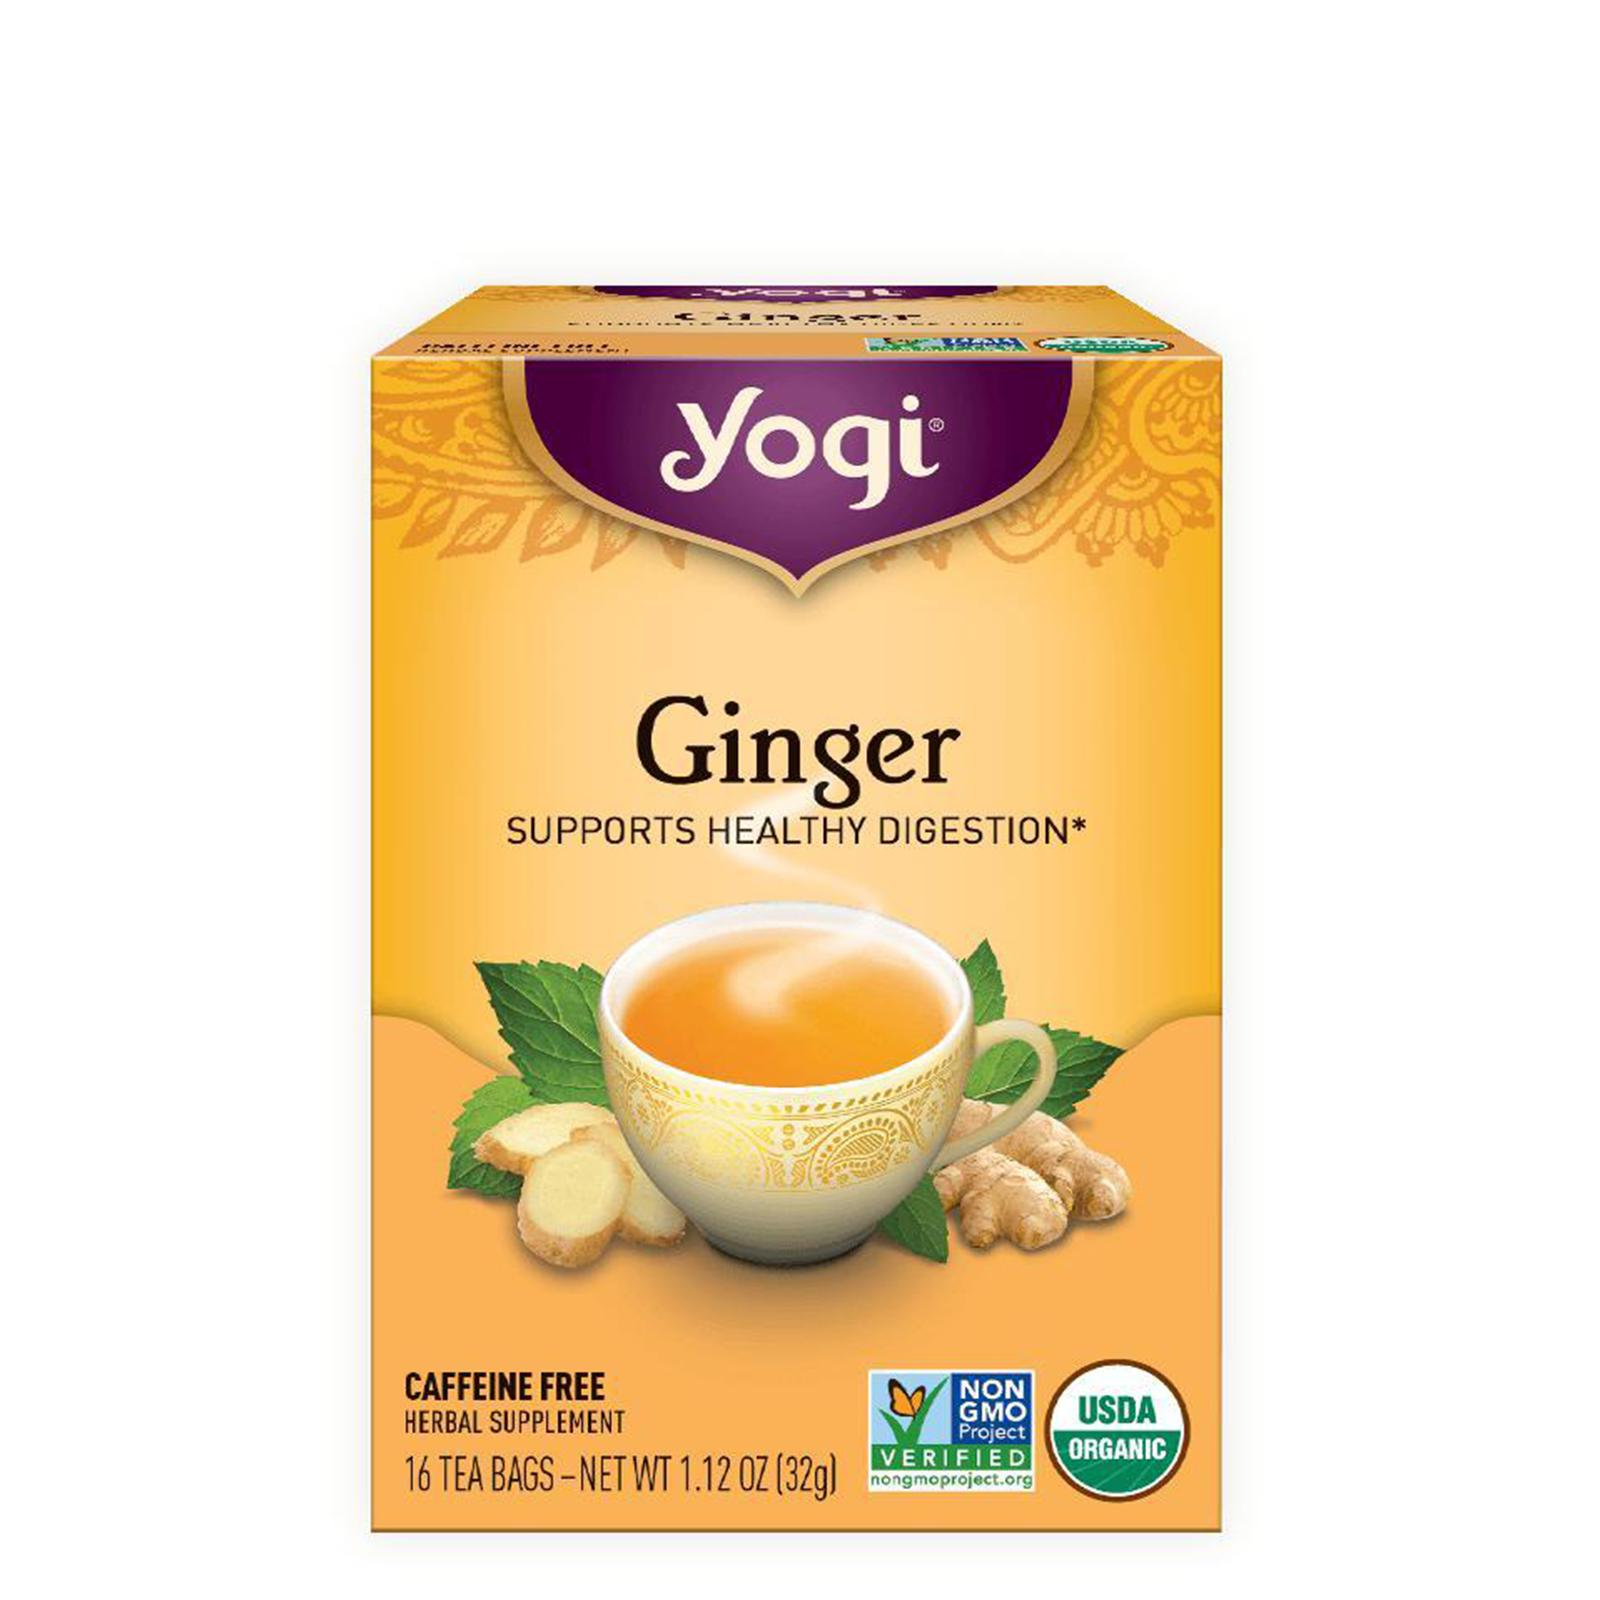 Yogi, Ginger - Supports healthy digestion, 16 Tea Bags